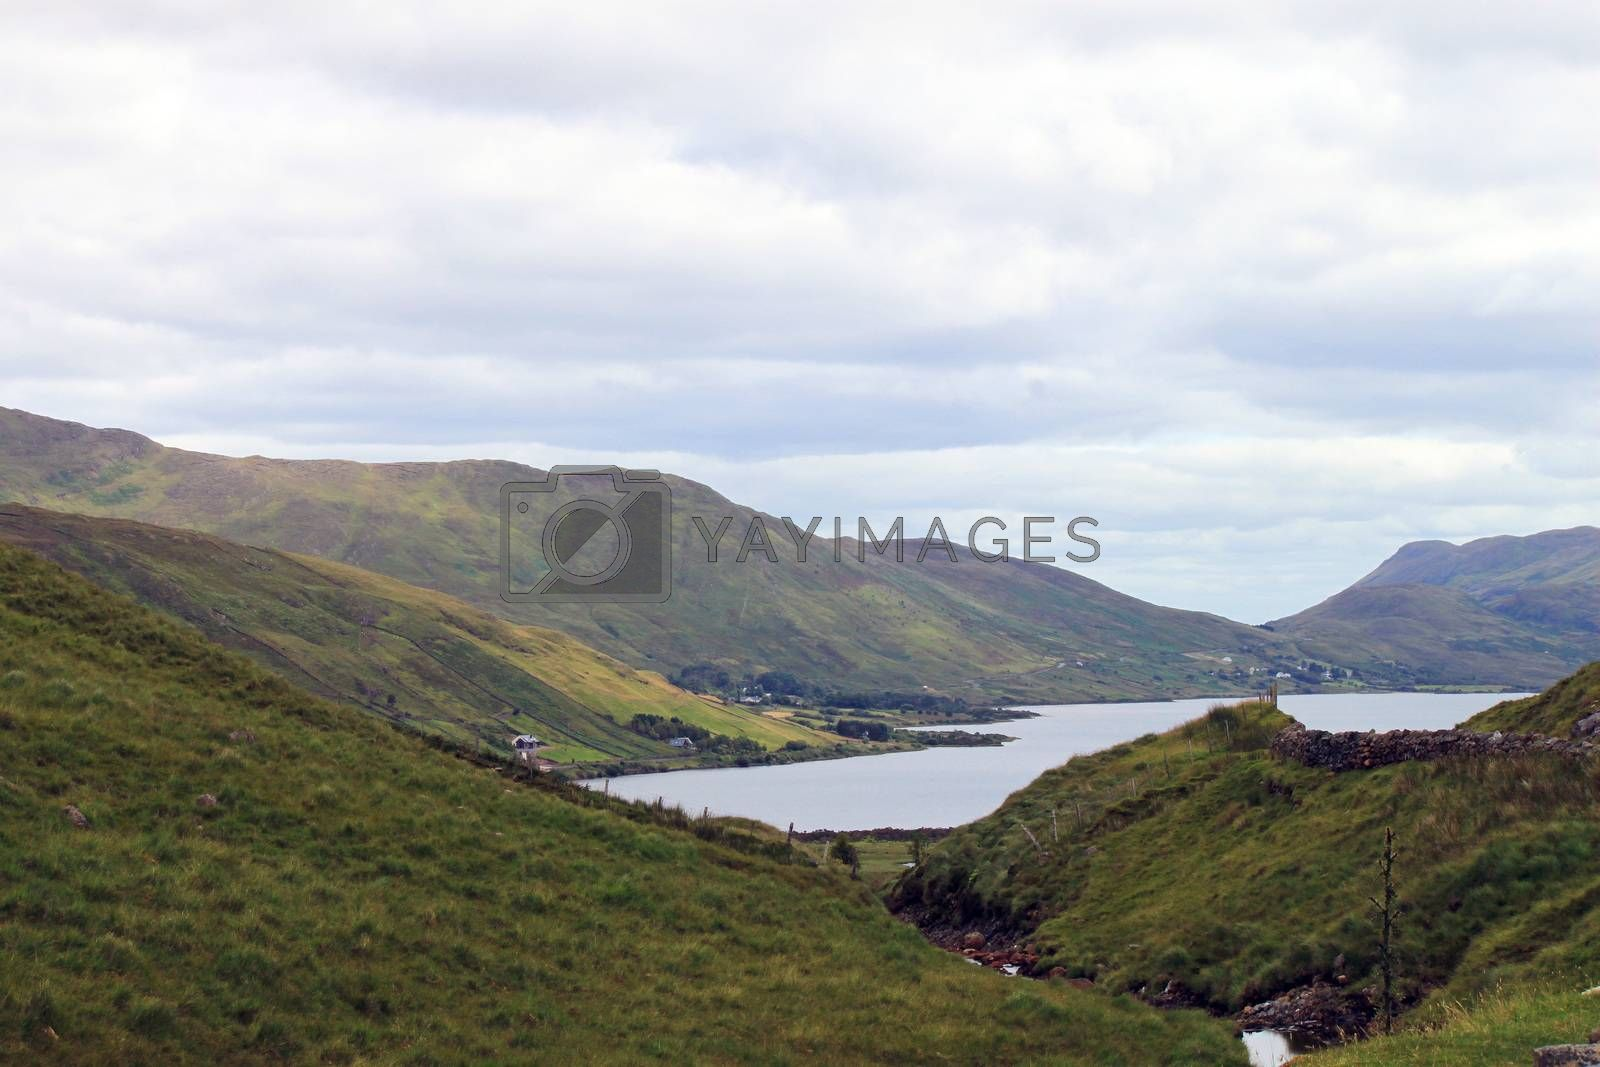 Royalty free image of Landscape with a lake and mountains by a_phoenix